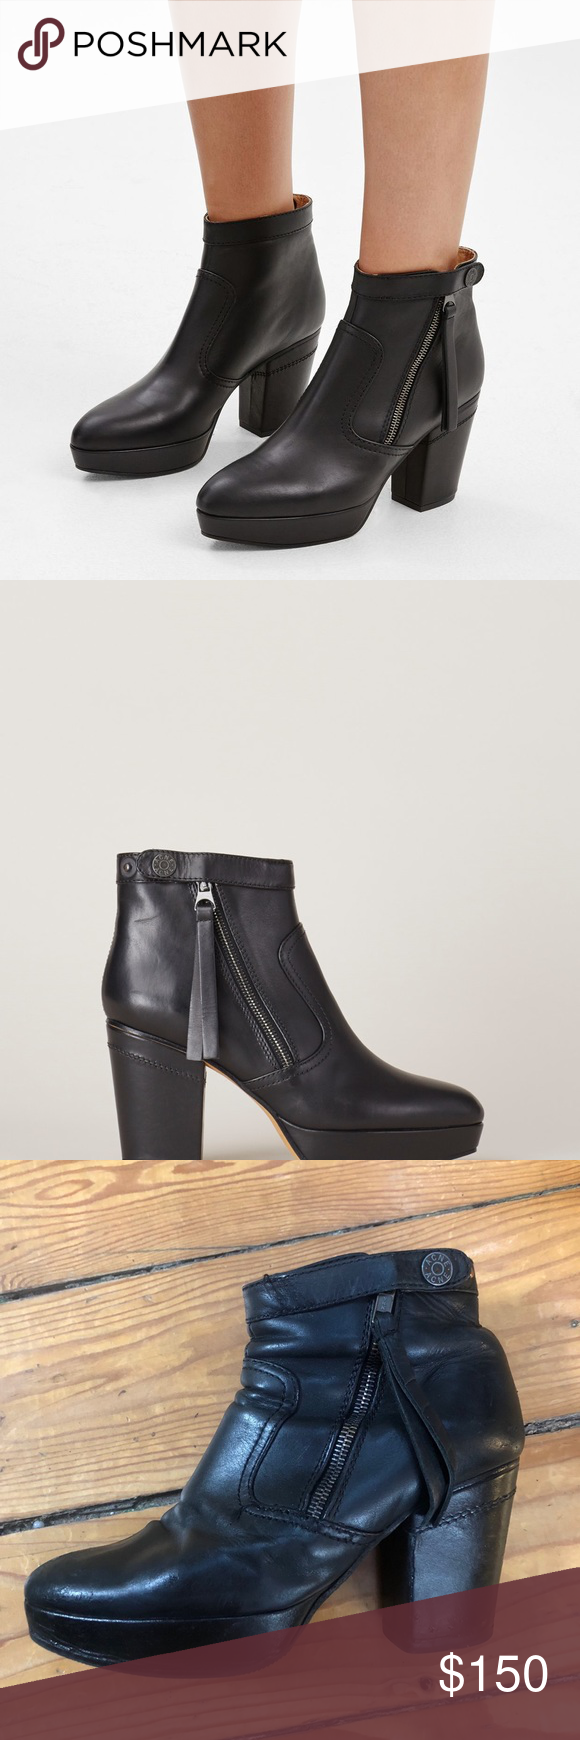 625cccb97620 Acne Studios Black Track Boot In good condition. Has a brand new sole, some  wear to the leather, and one button replaced (you can t tell the difference  from ...